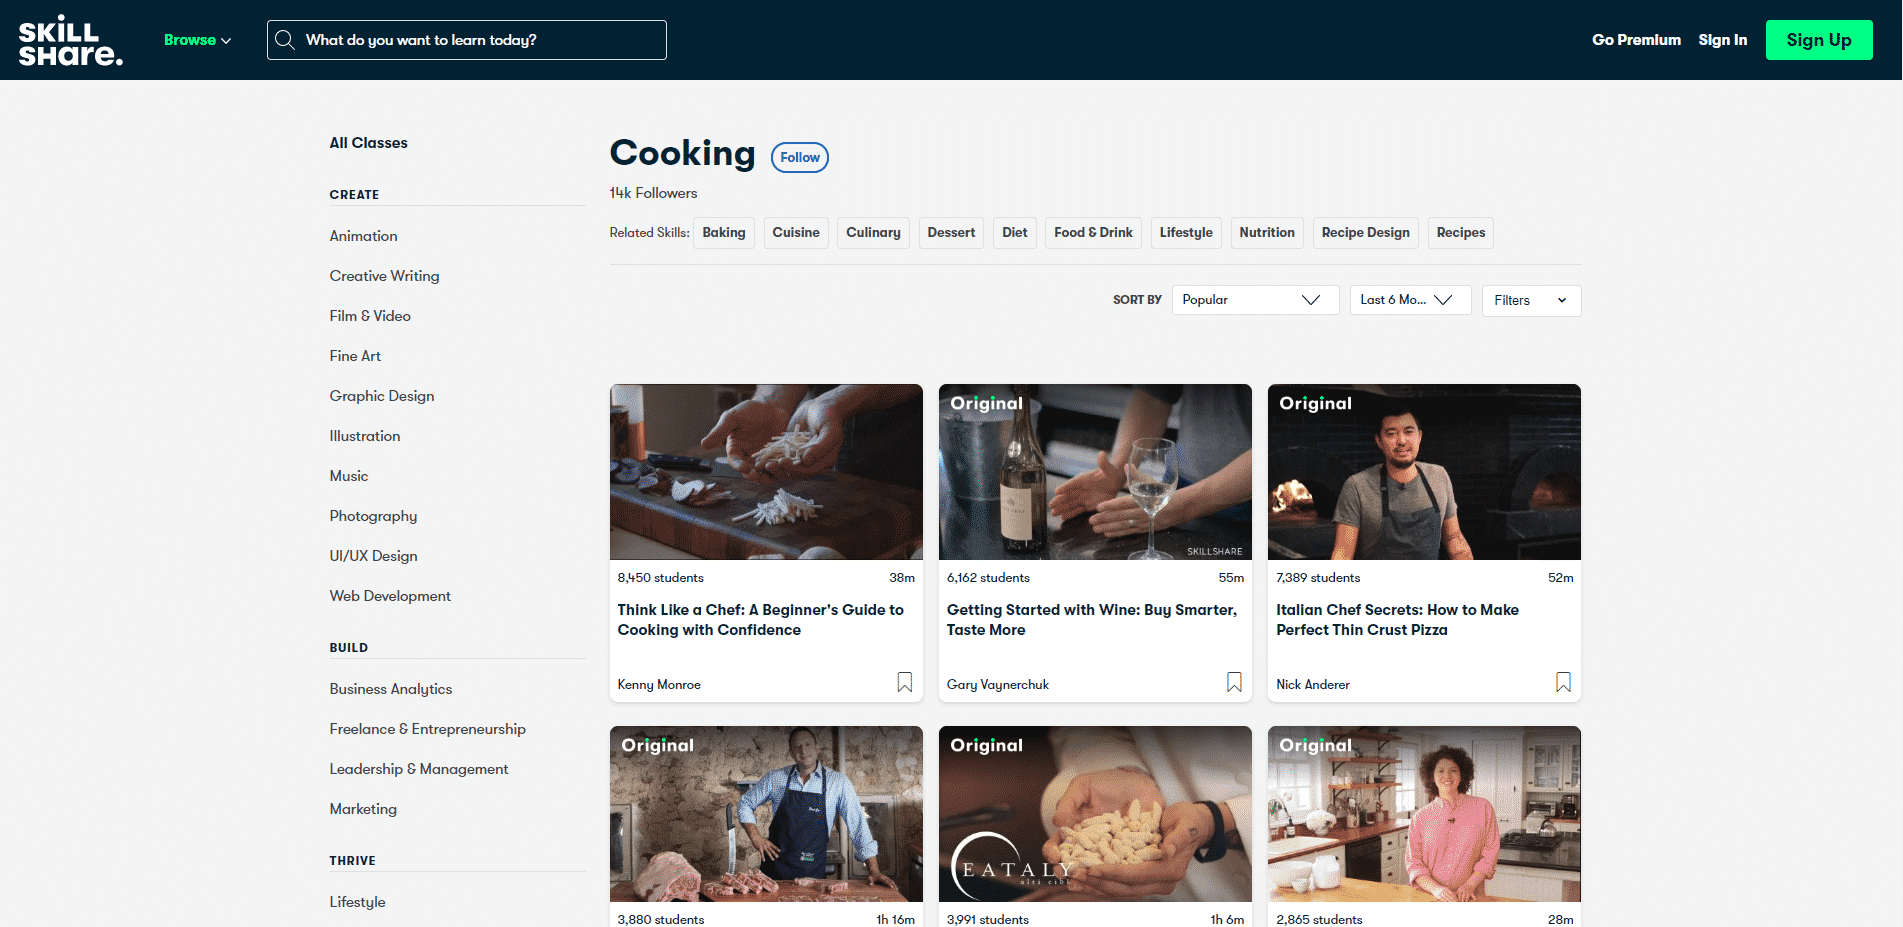 Skill Share Learn Cooking Lessons Online